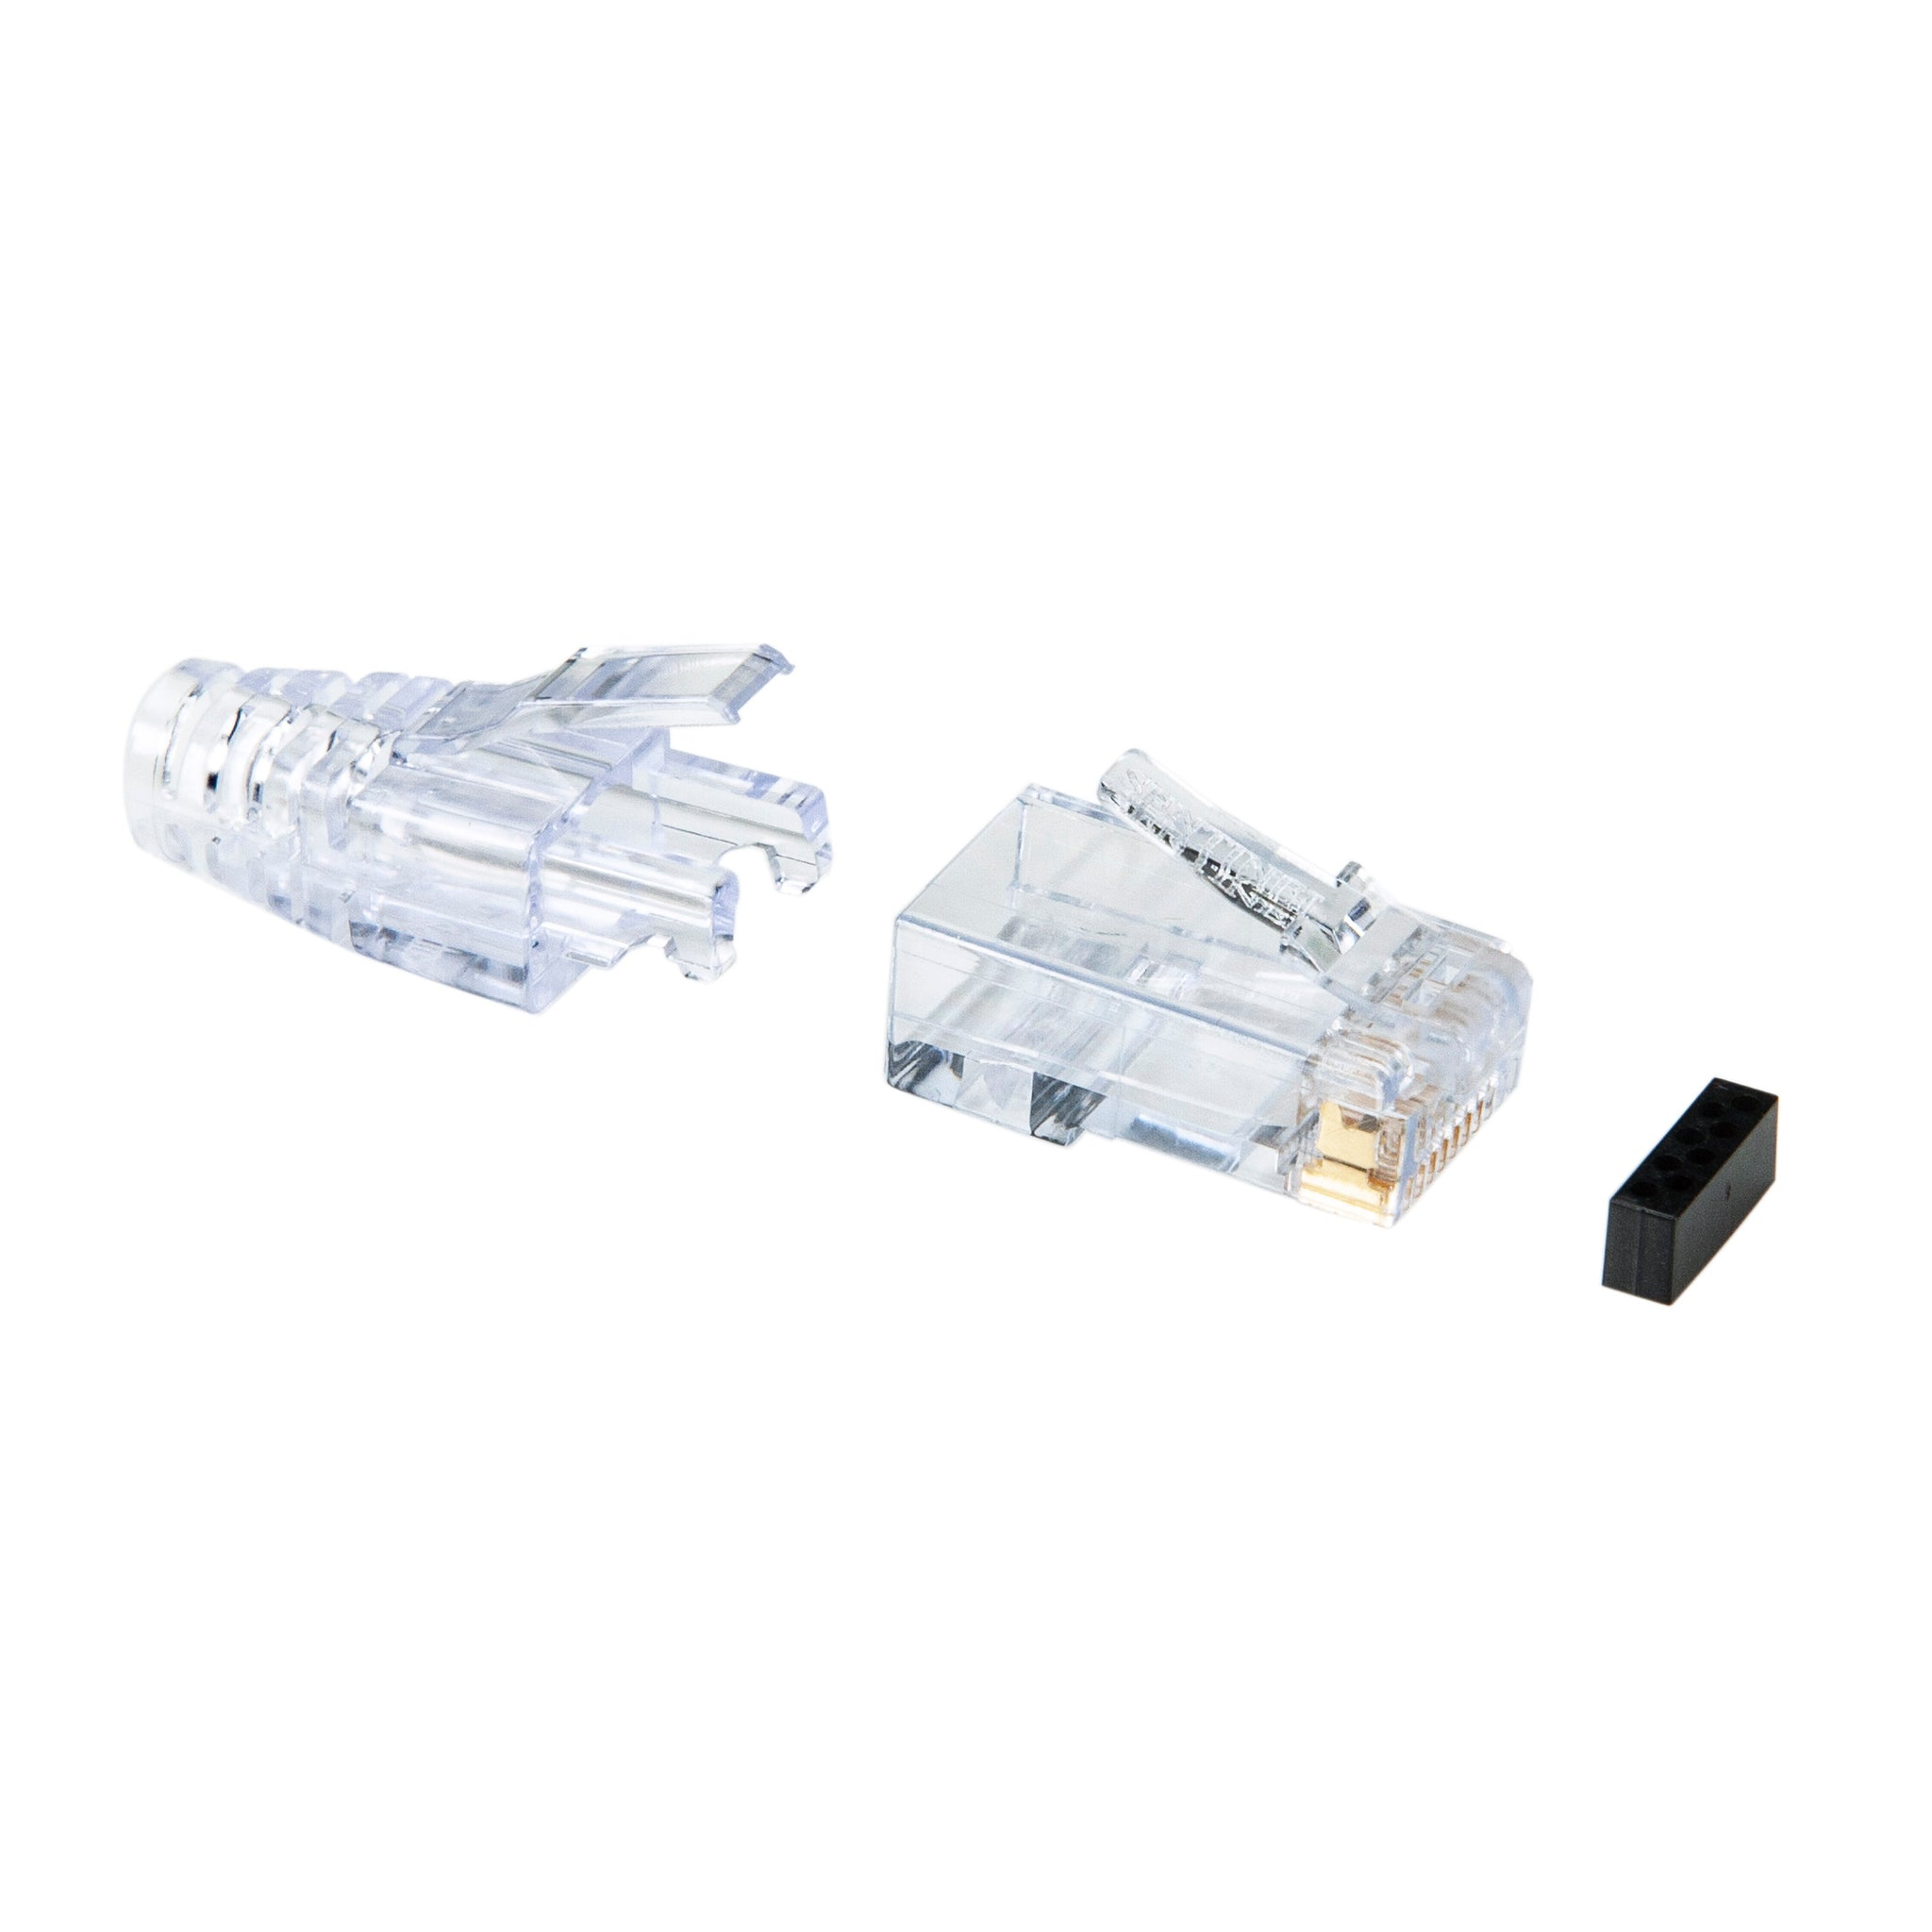 RJ45 Cat6 Male Plug Craftpak™ (25pk)